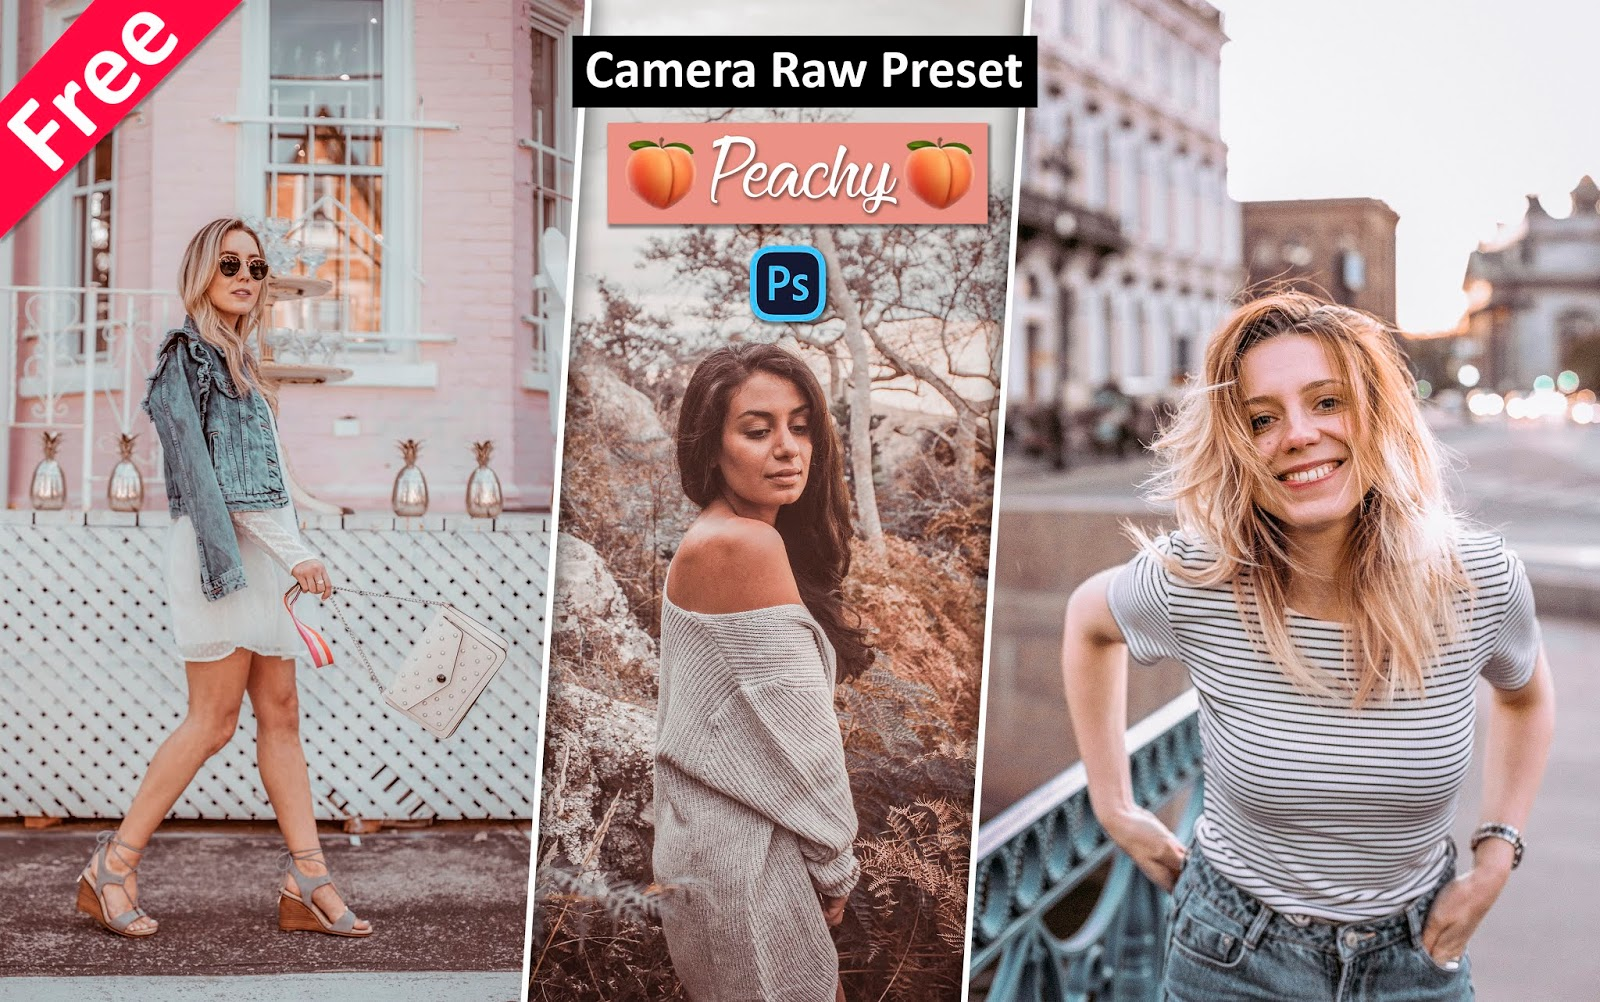 Download Peachy Camera Raw Preset for Free | How to Create Peachy Effect in Photoshop